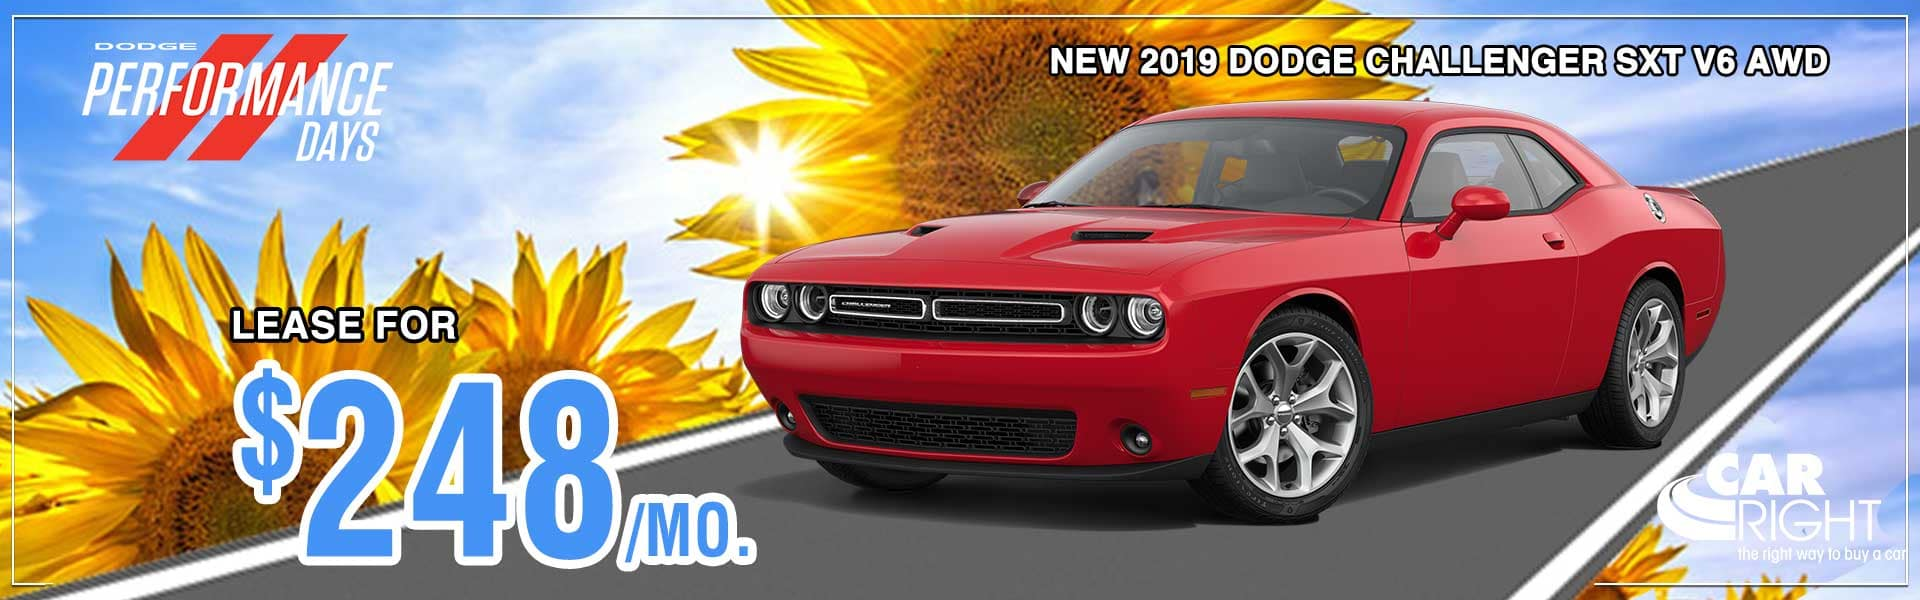 CarRight Chrysler Jeep Dodge Ram Fuso. Moon Township, PA. New, Used, parts, accessories, service. The right way to buy a car. 2019 Dodge Challenger SXT AWD